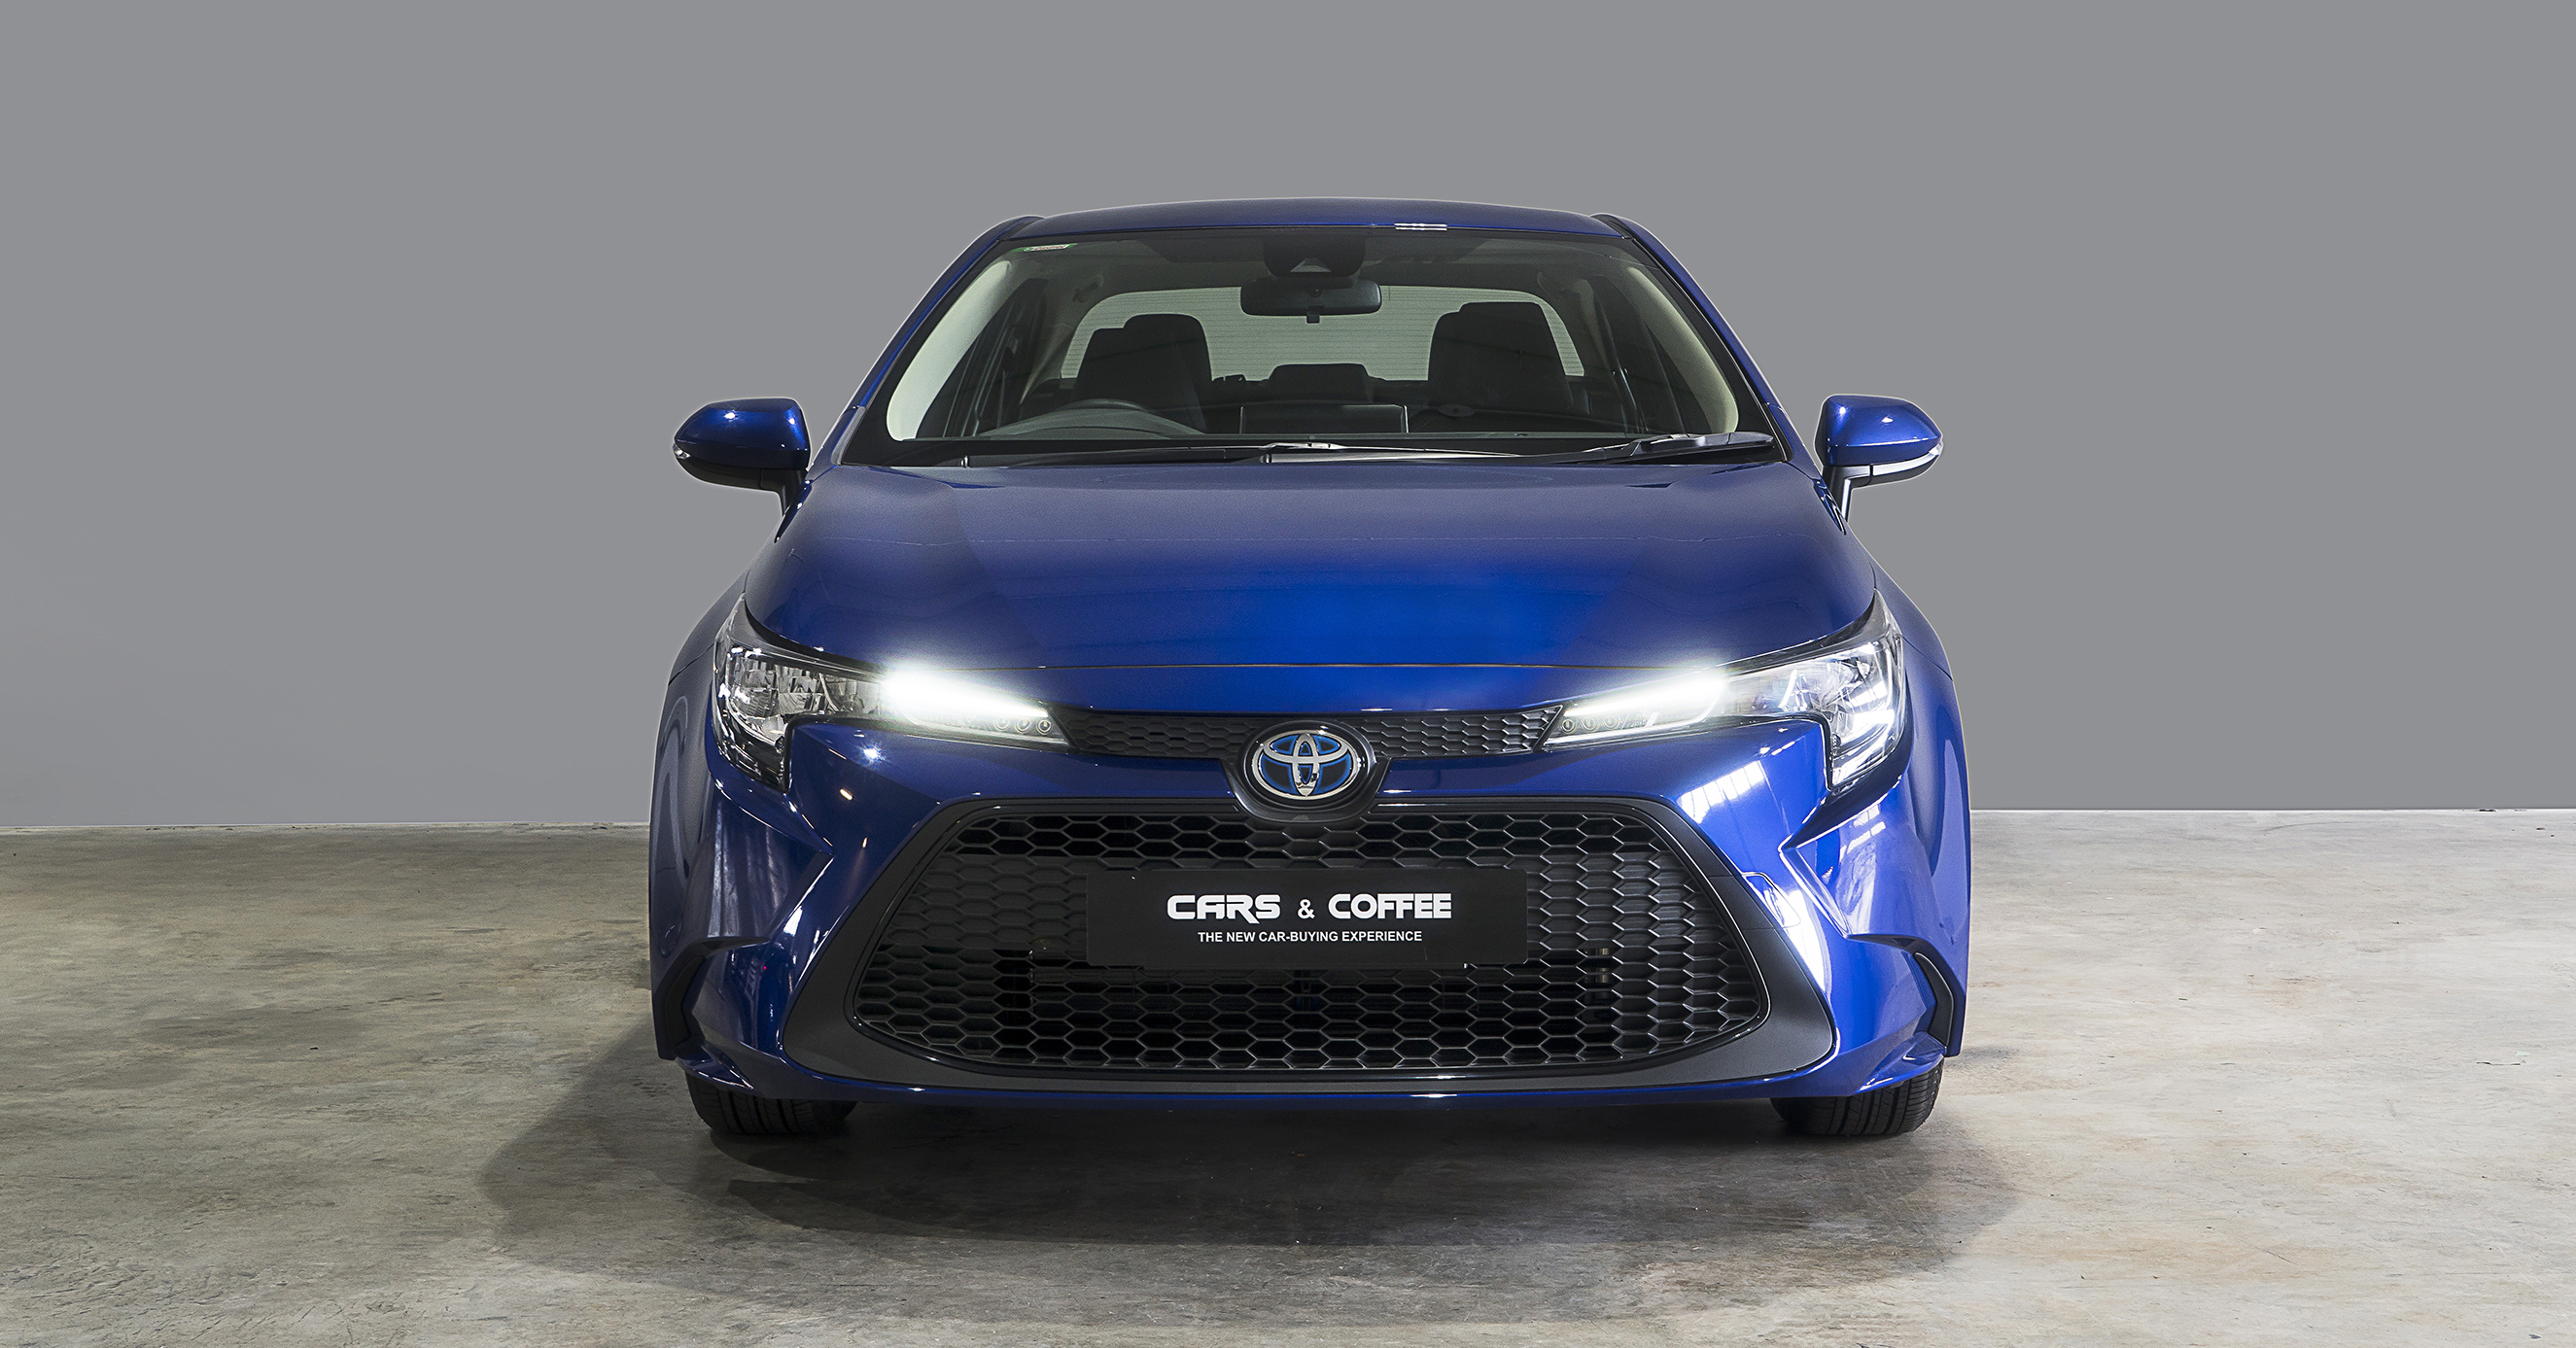 Packed with the latest Toyota performance and safety technology, Corolla Hatch Hybrid is leading the way to a bolder, more exhilarating drive.